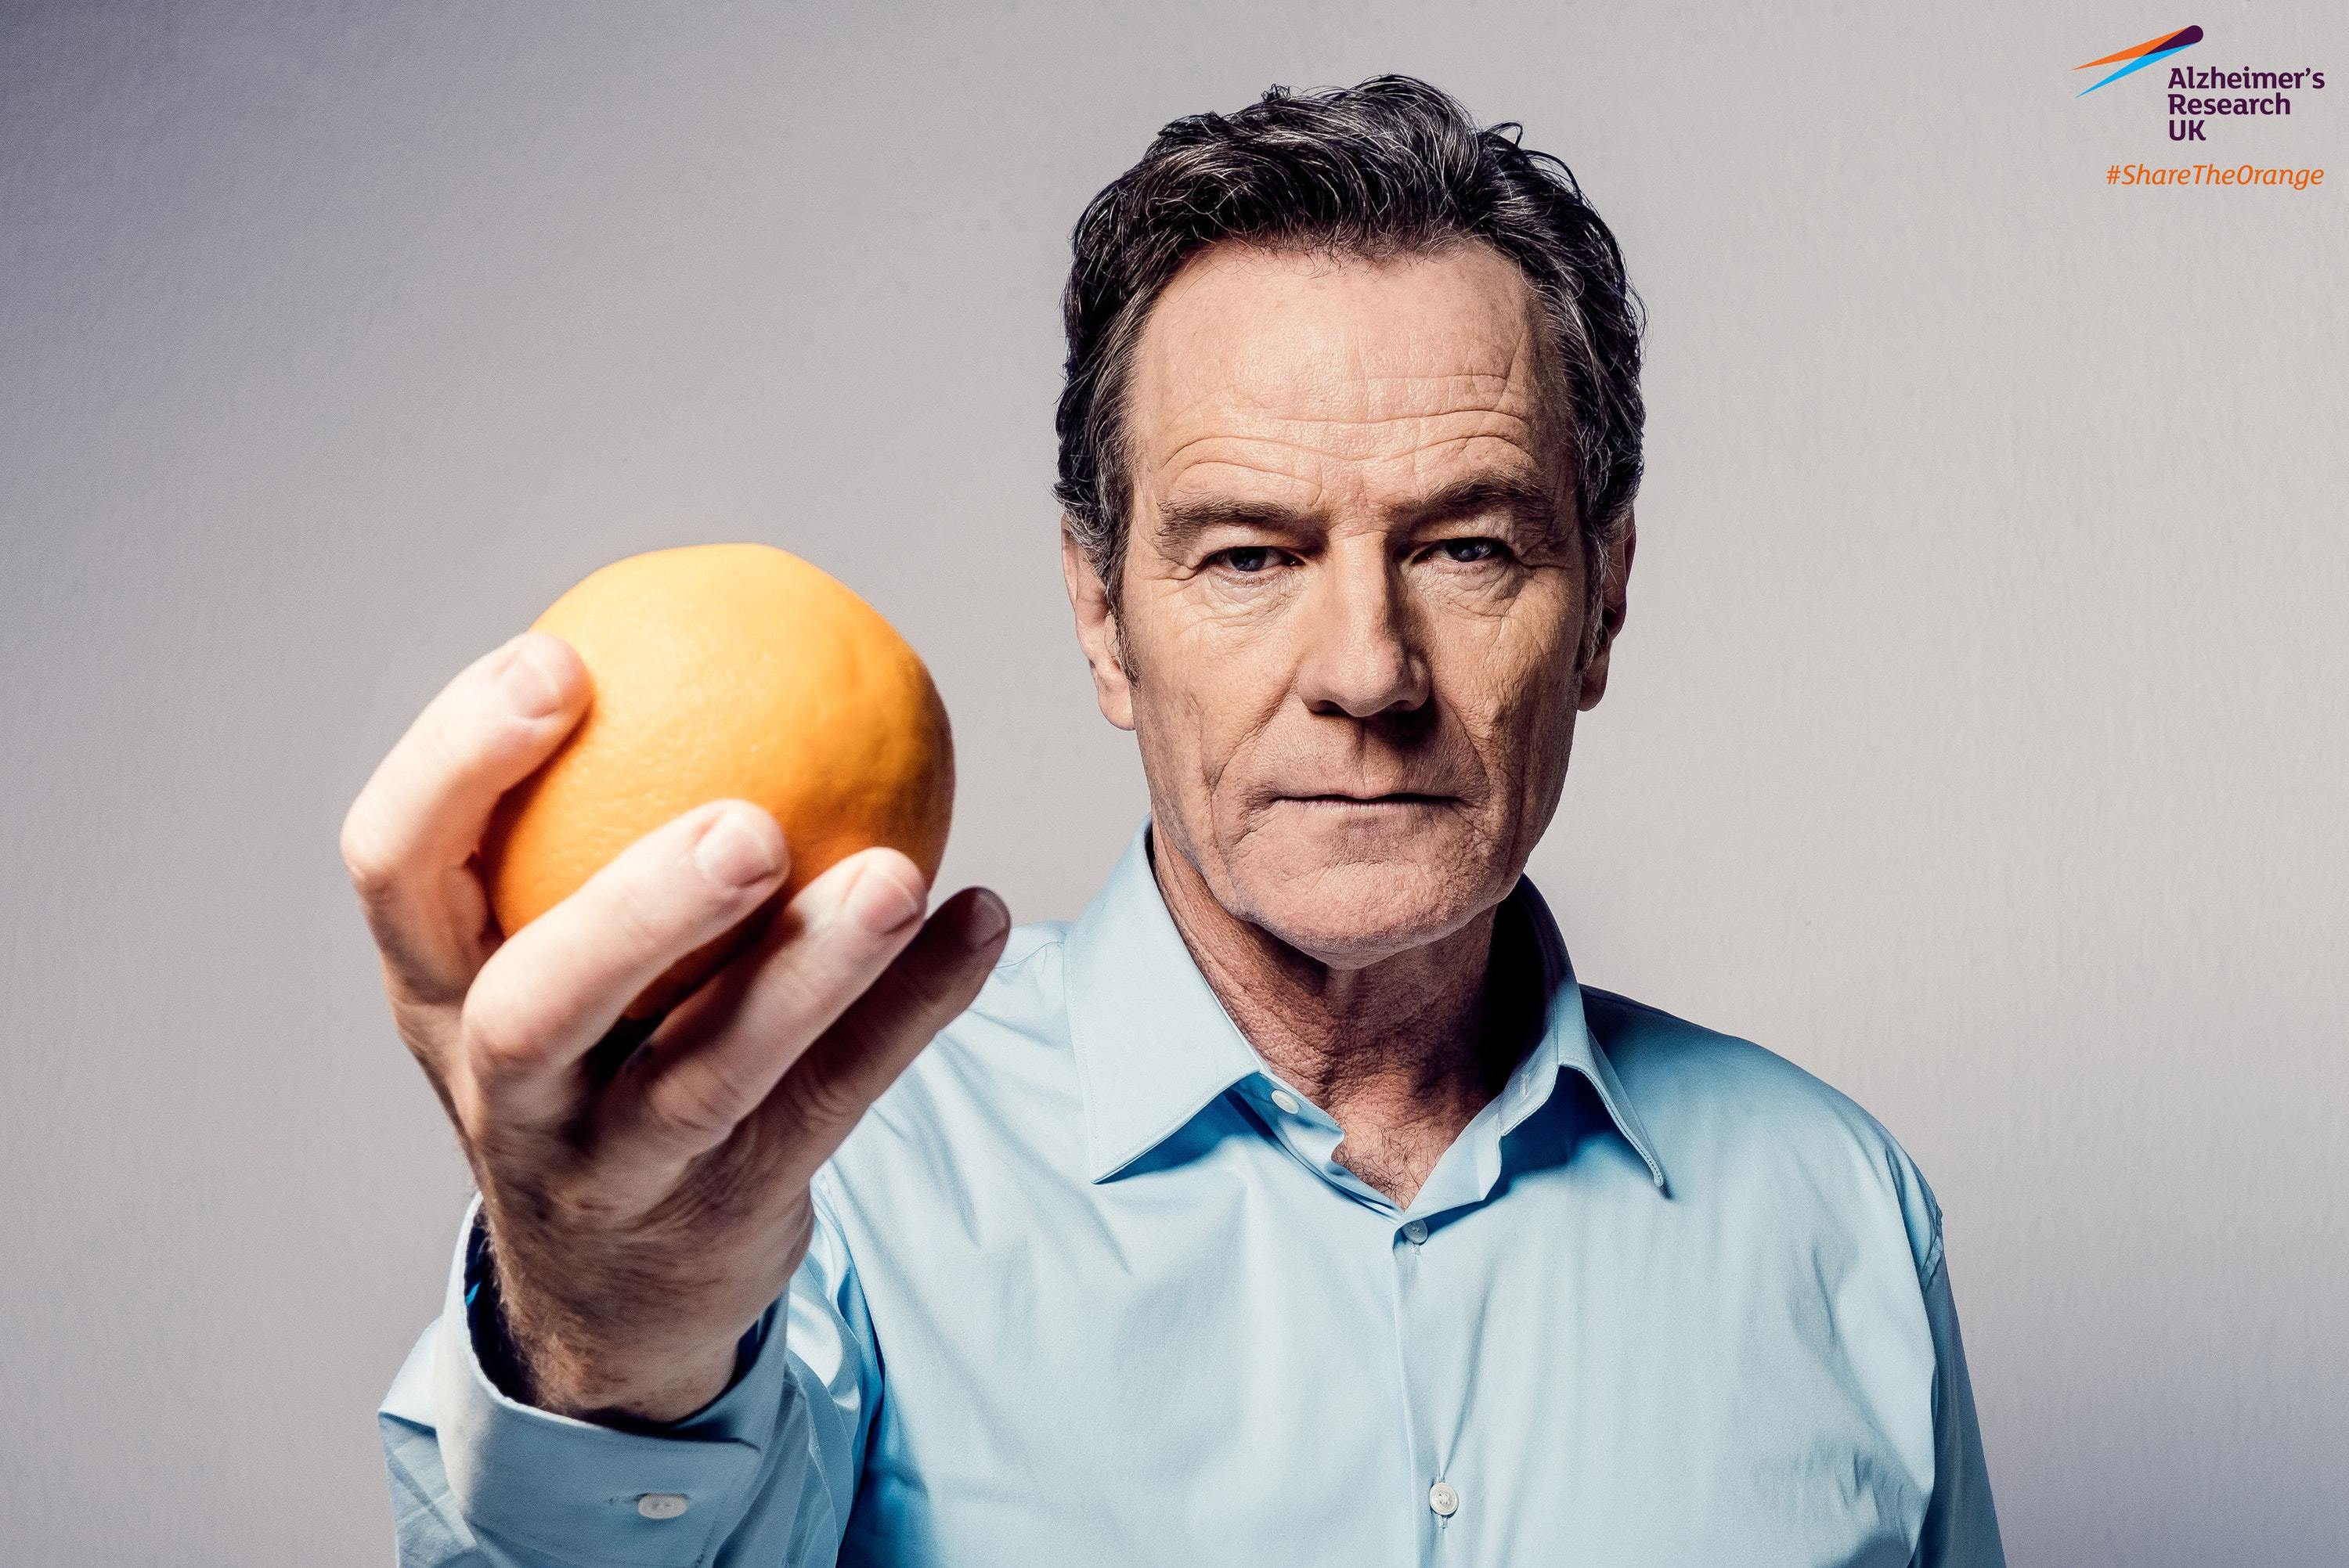 Bryan Cranston stars in poignant video to battle dementia misconceptions (Alzheimer's Research UK)